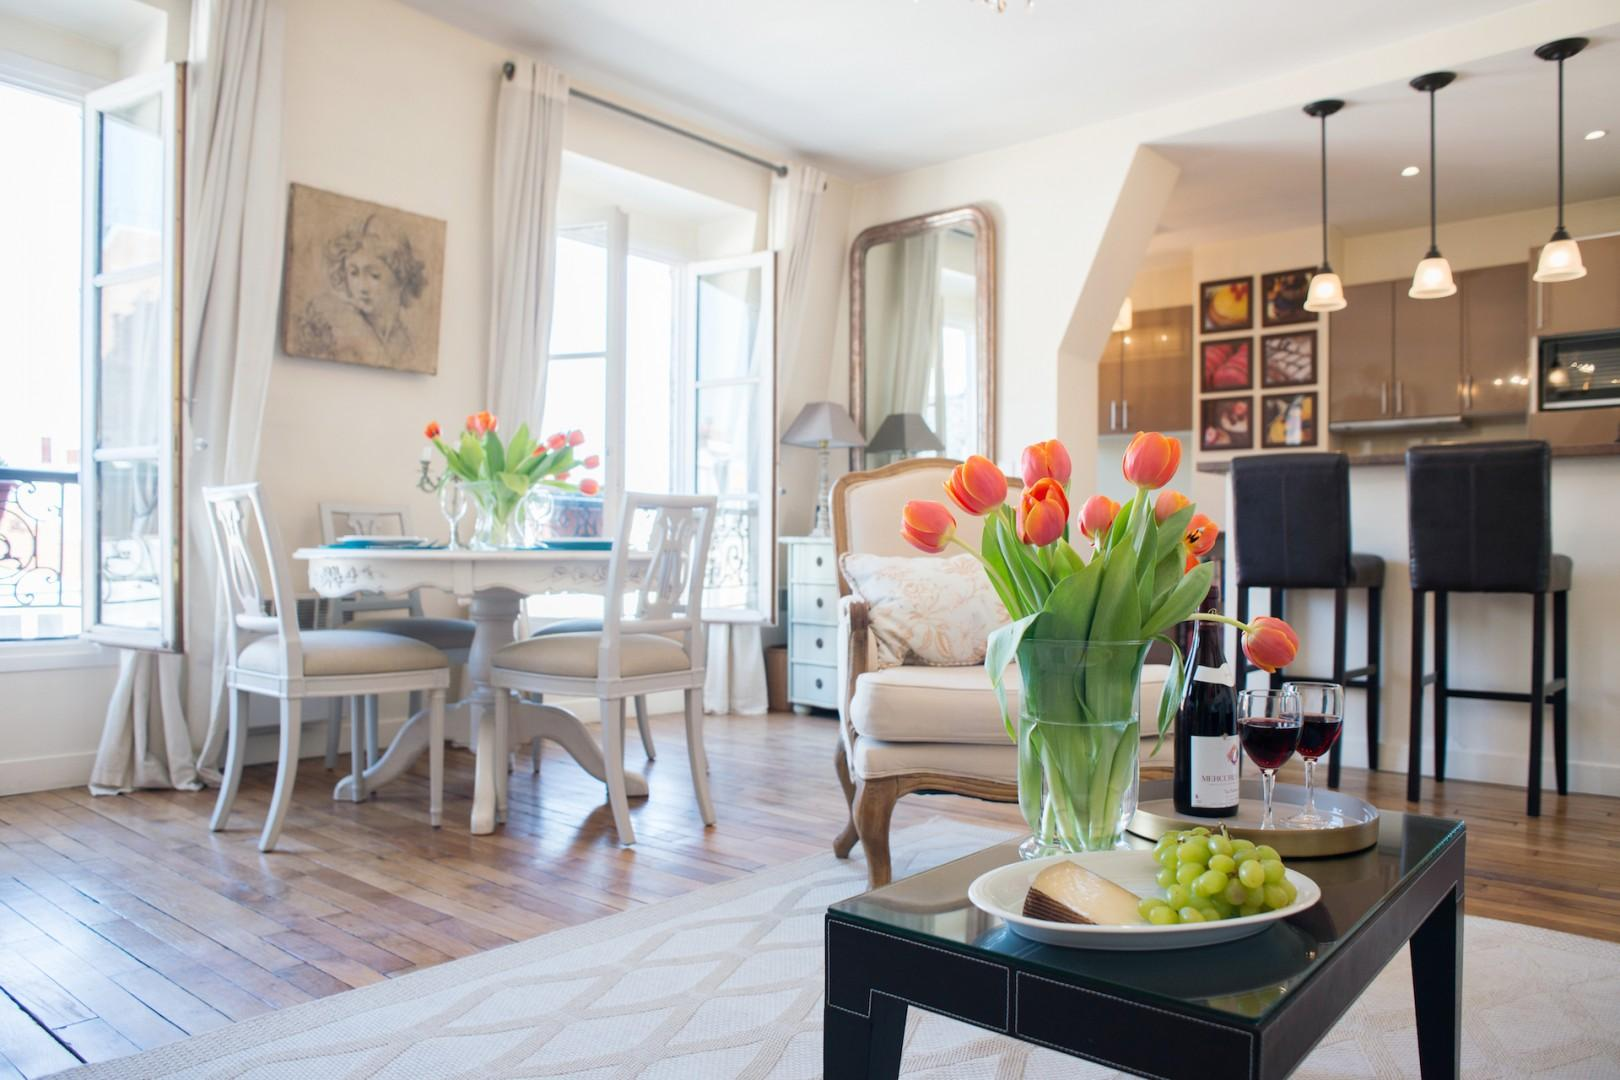 The soft décor creates a warm and welcoming room.